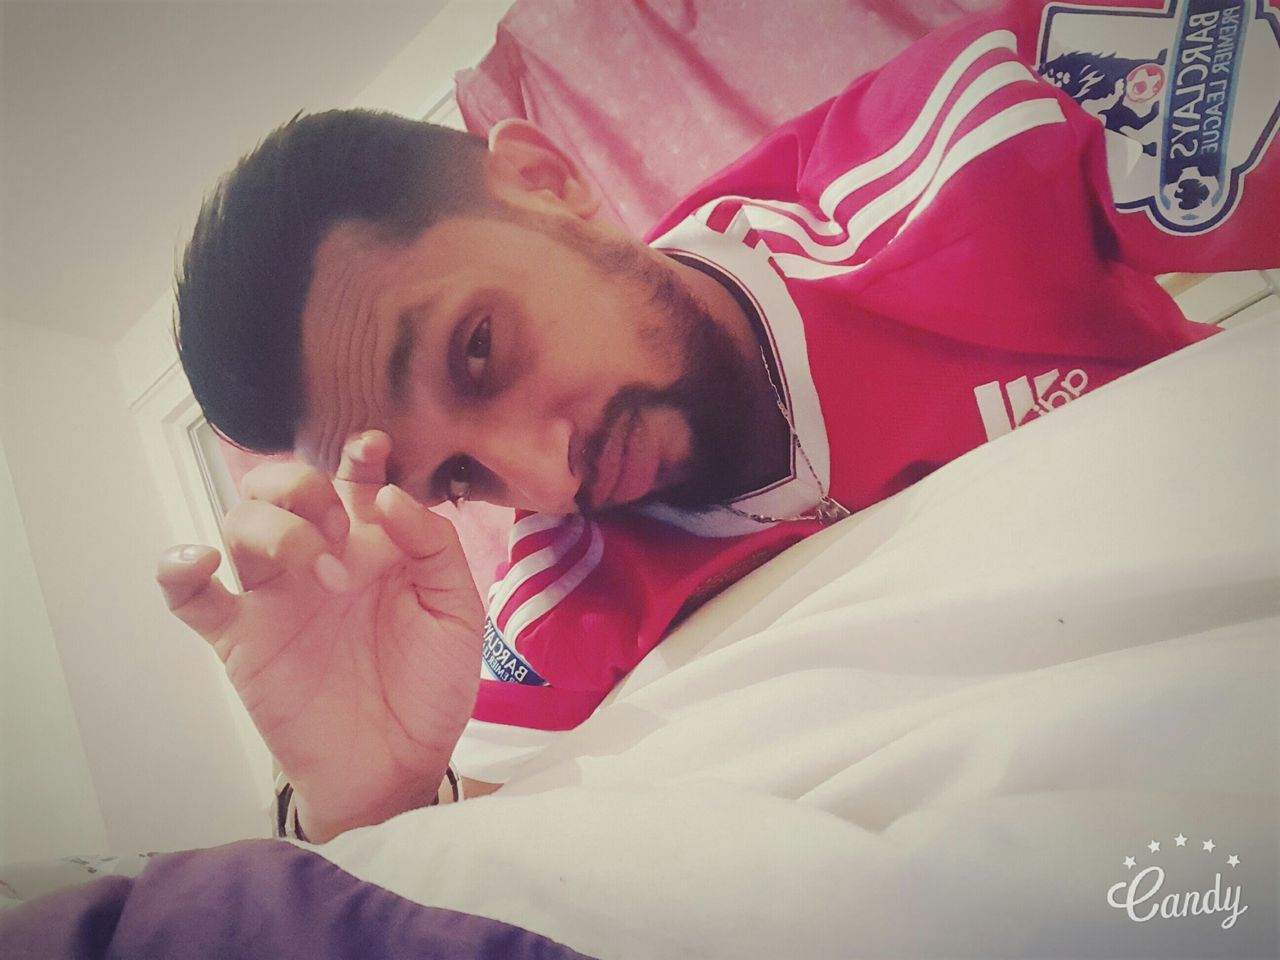 Sexygirl Hairstyle That's Me Hi! In Stead Of Mustache Its A Beared Beared Relaxing Taking Photos Thatsme😘✌✌ Wide Awake Football Manchesterunited Check This Out Selfportrait Hello World Selfportrait_tuesday_nonchallenge Selfie ✌